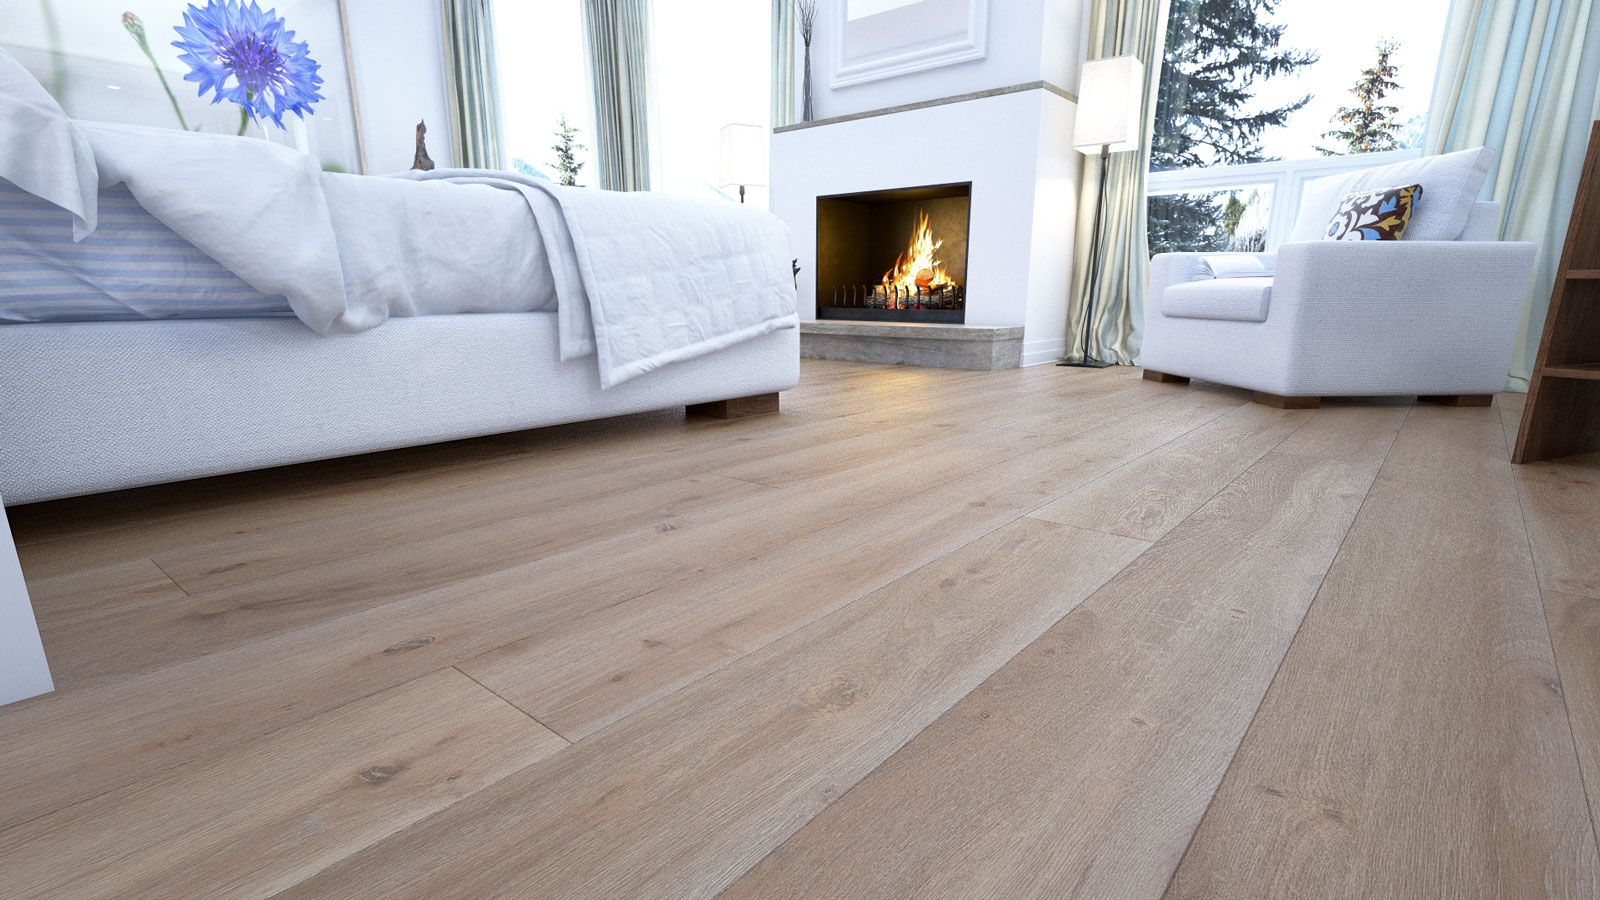 Proline Floors - Grand Provincial Oak Laminate Flooring